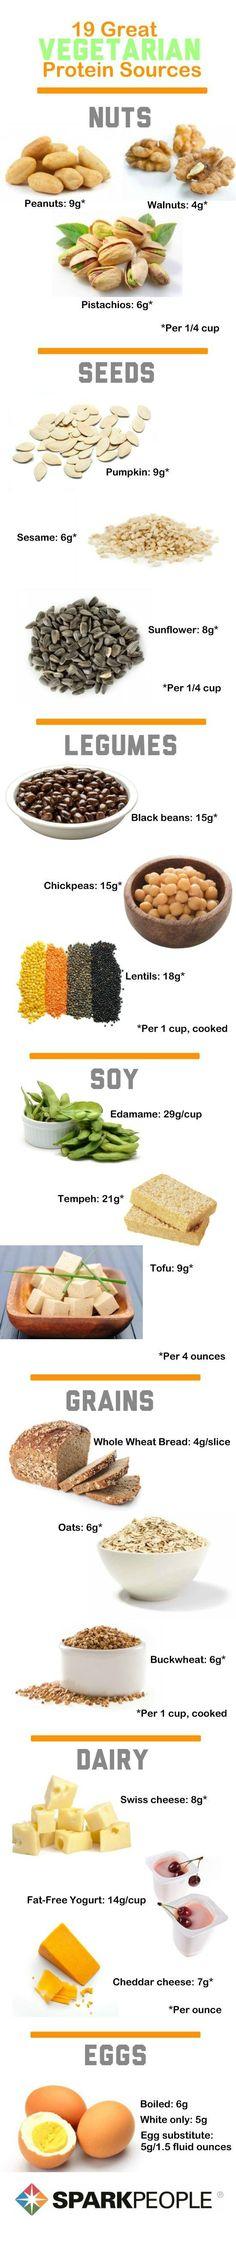 Hey, vegetarians! The next time someone asks you how you get your protein, show them this chart ;)